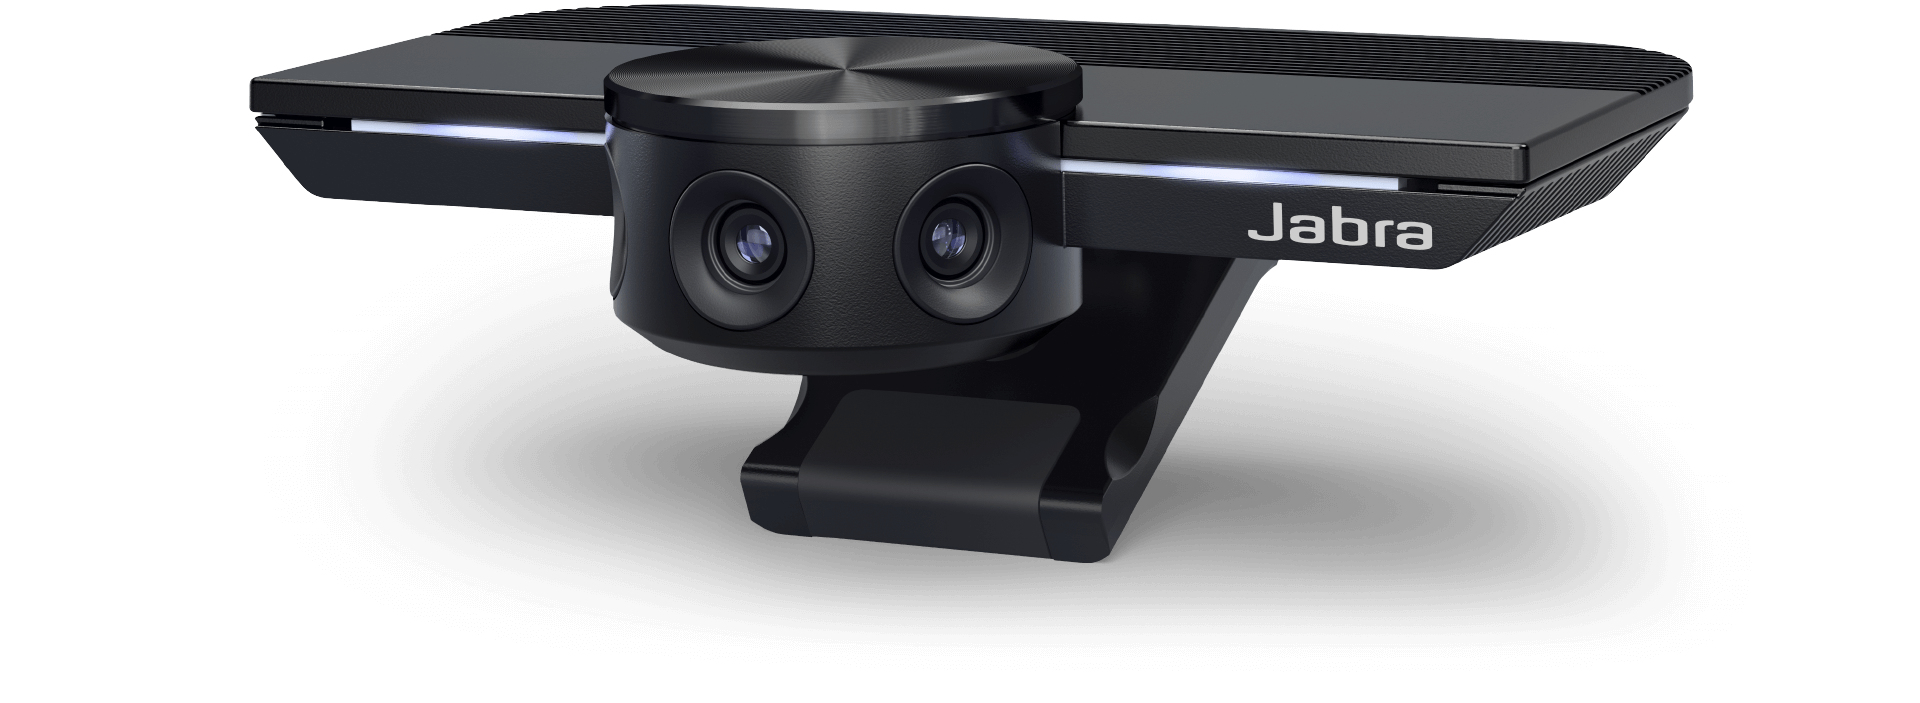 Jabra PanaCast 13 MP 3840 x 1080 pixels 30 fps Black